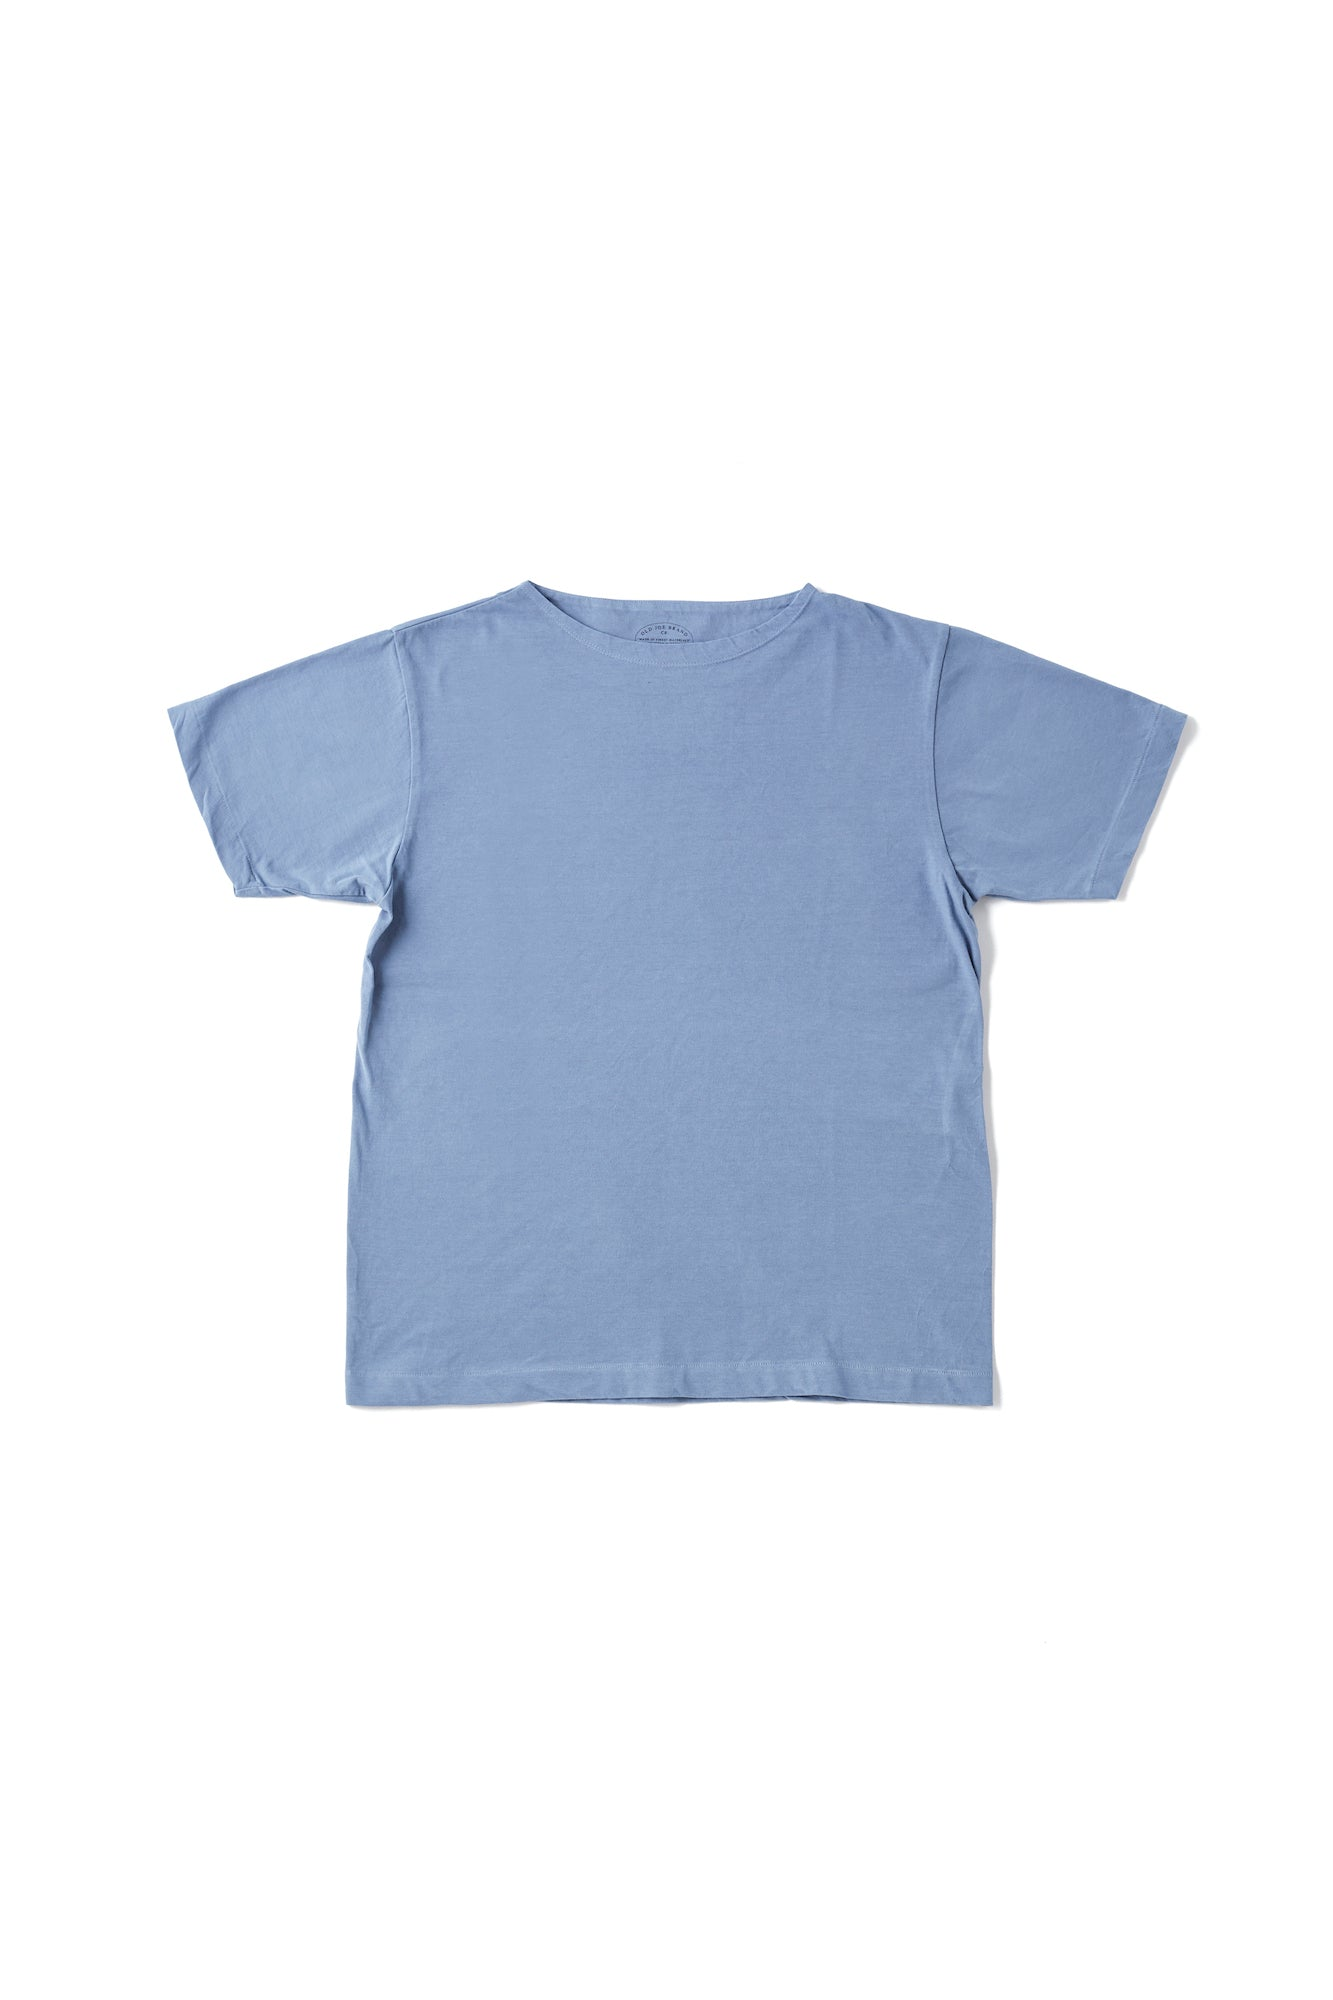 TUBE TEE(BOAT-NECK) - 201OJ-CT07